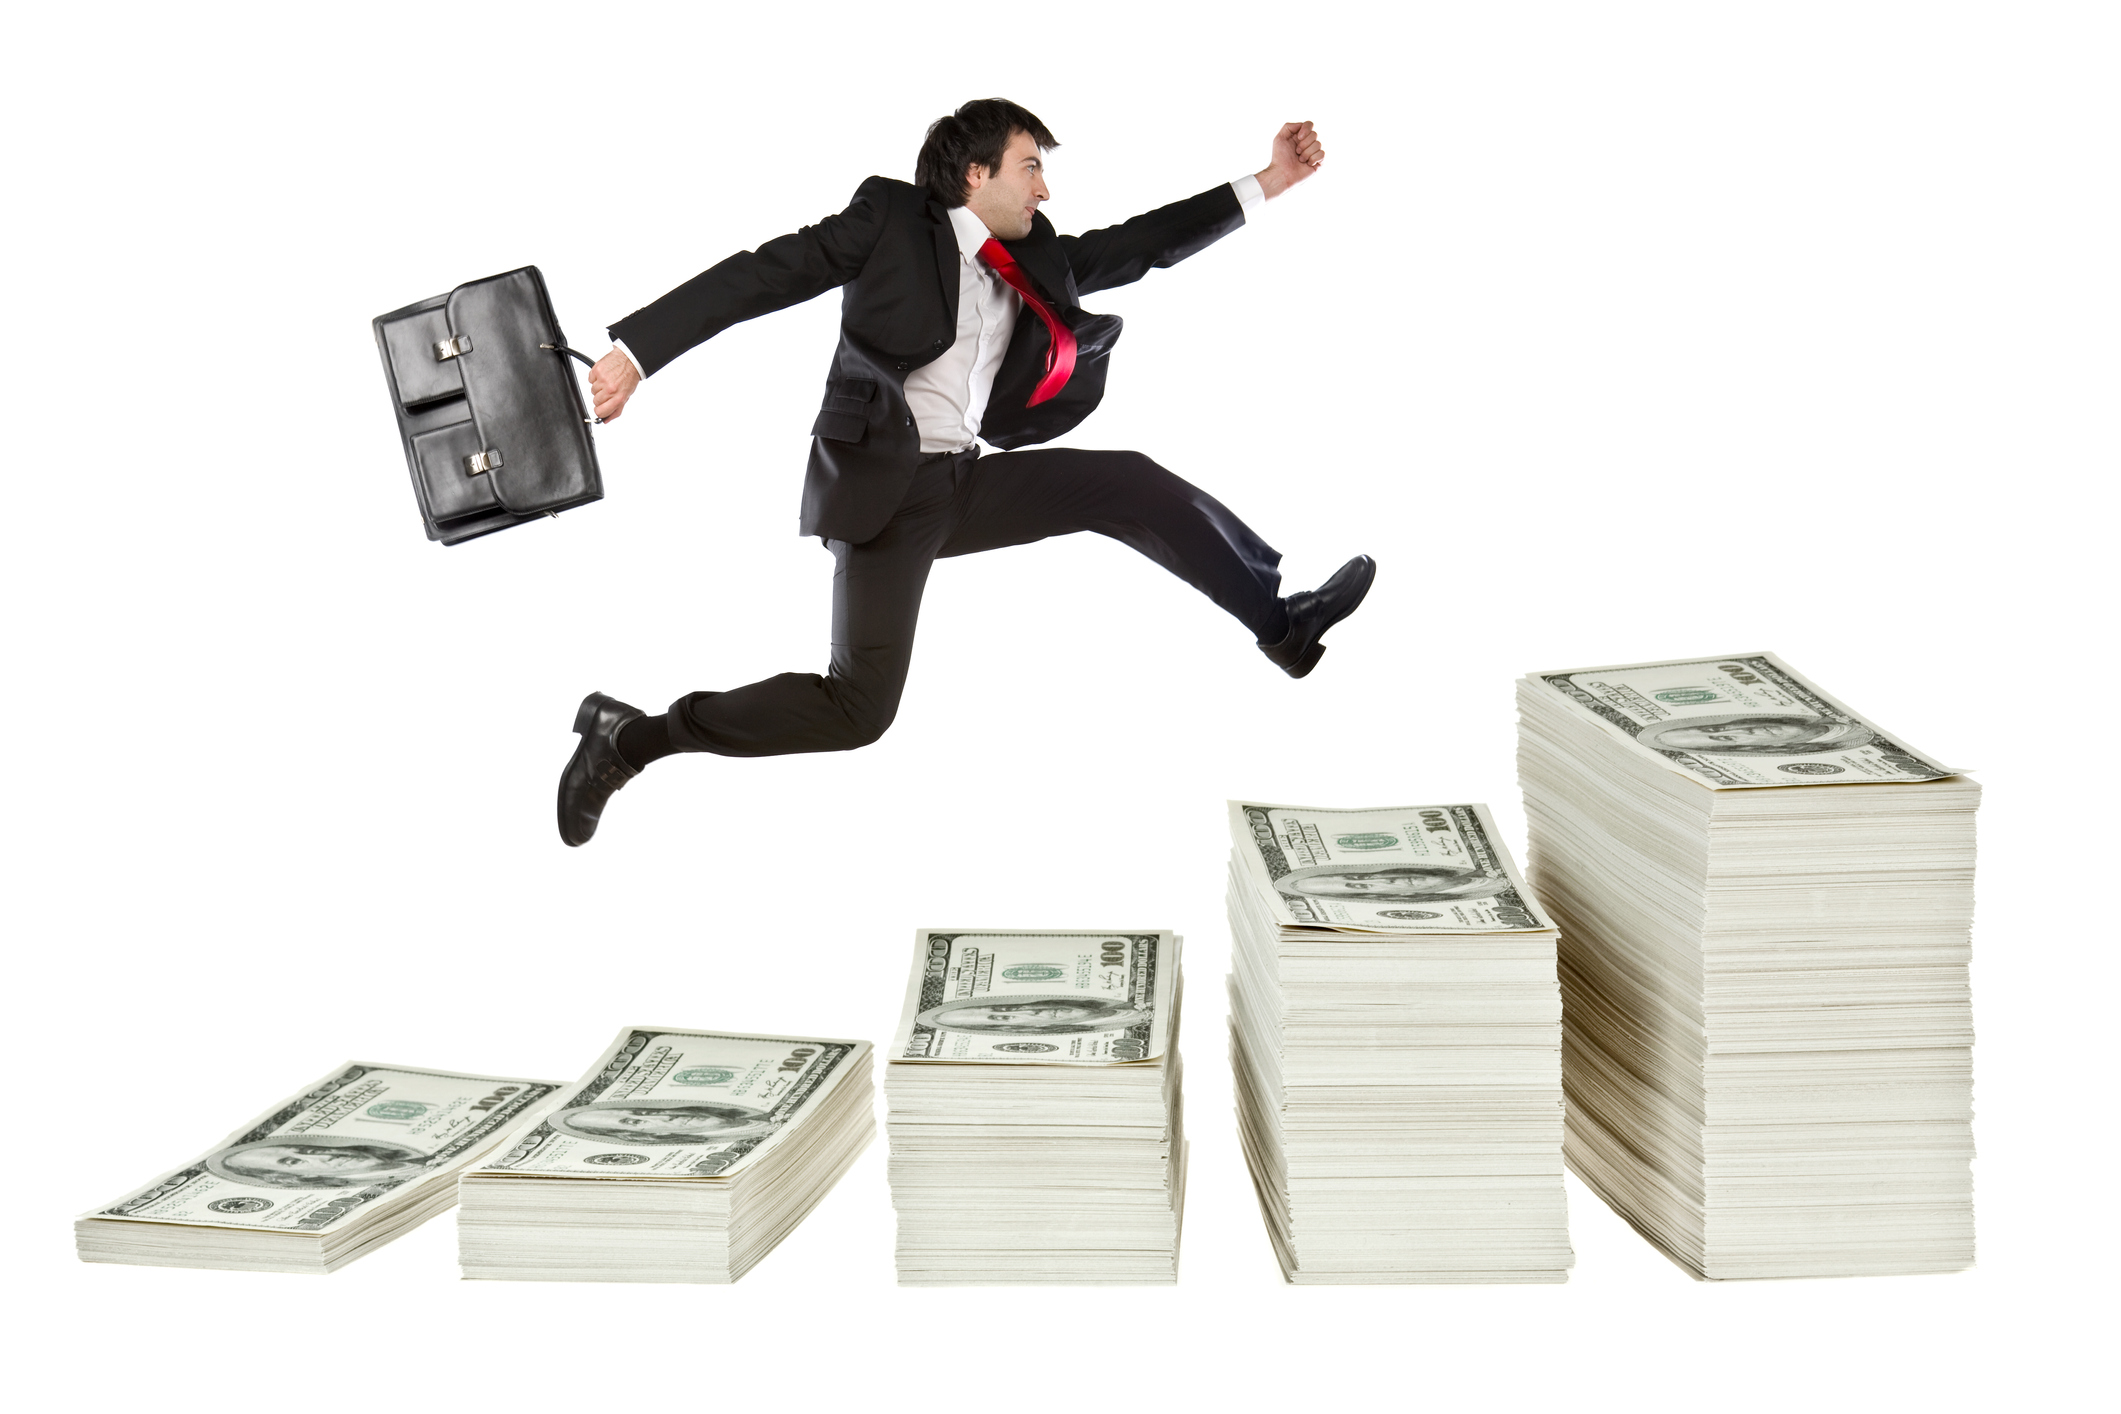 Leaping over money image